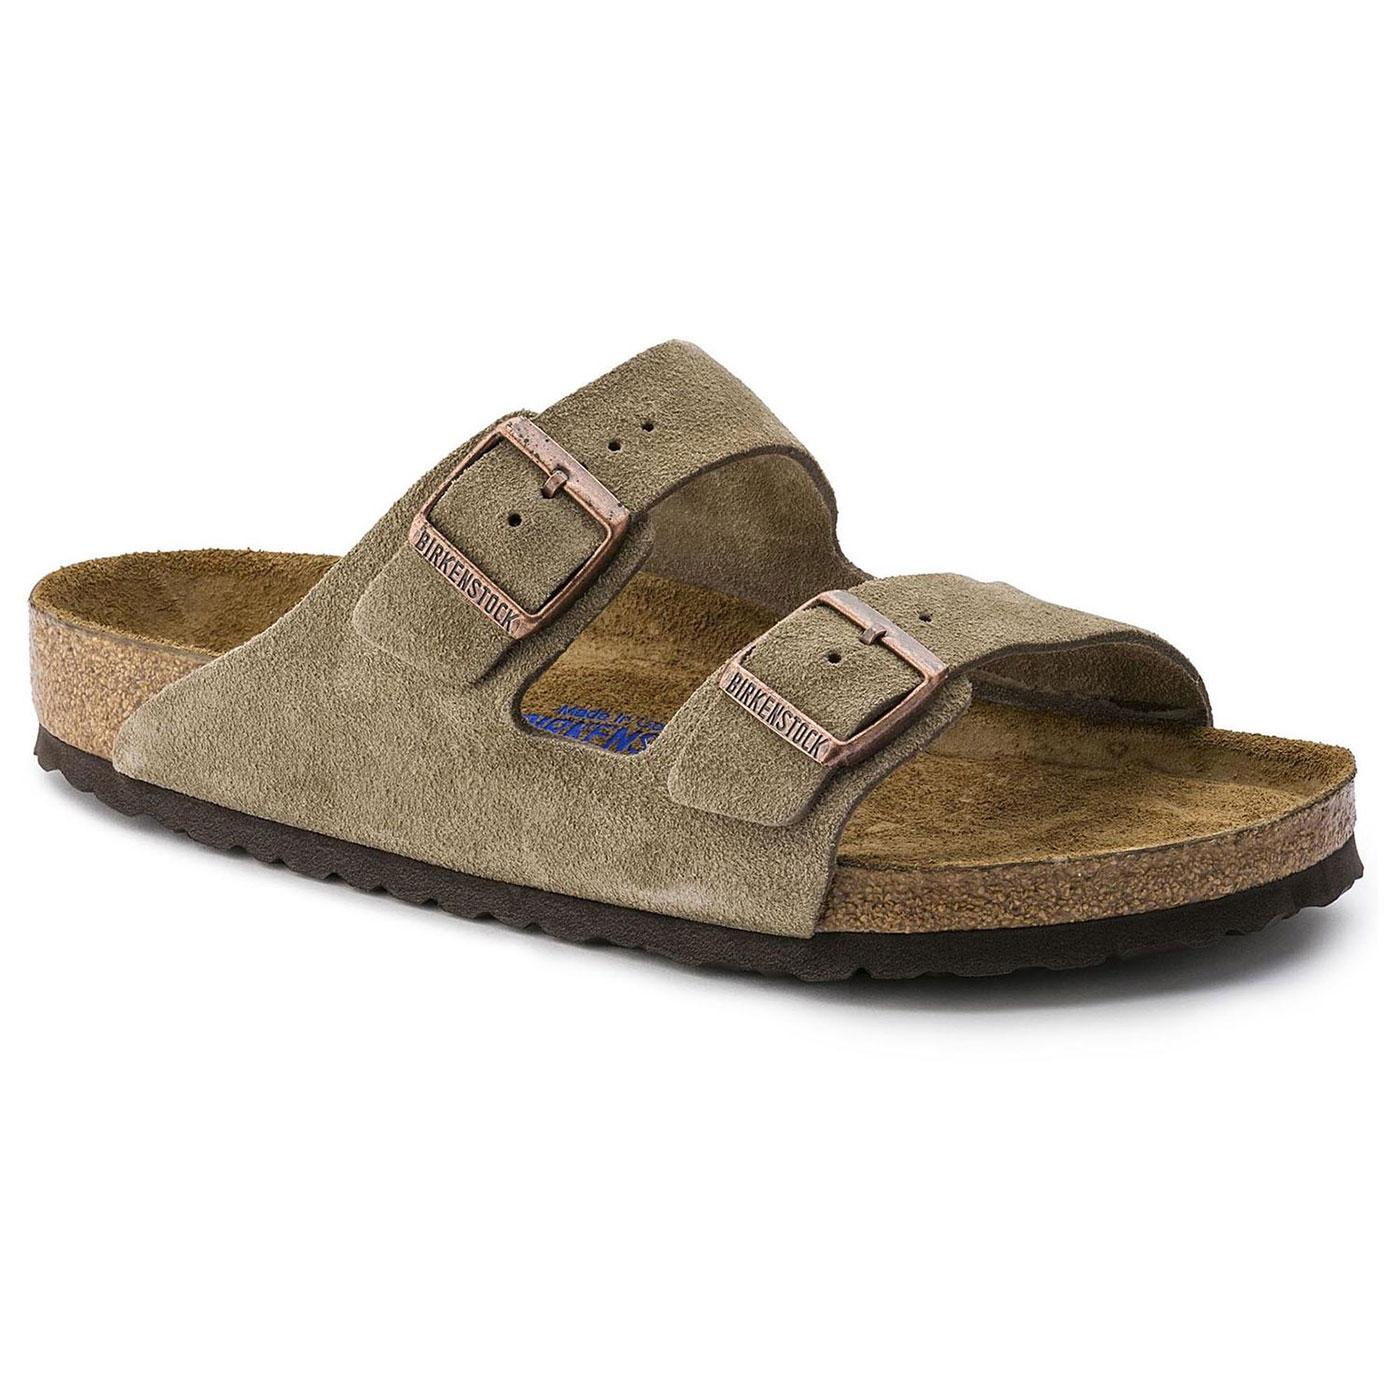 Arizona Soft Footbed BIRKENSTOCK Retro Sandals T